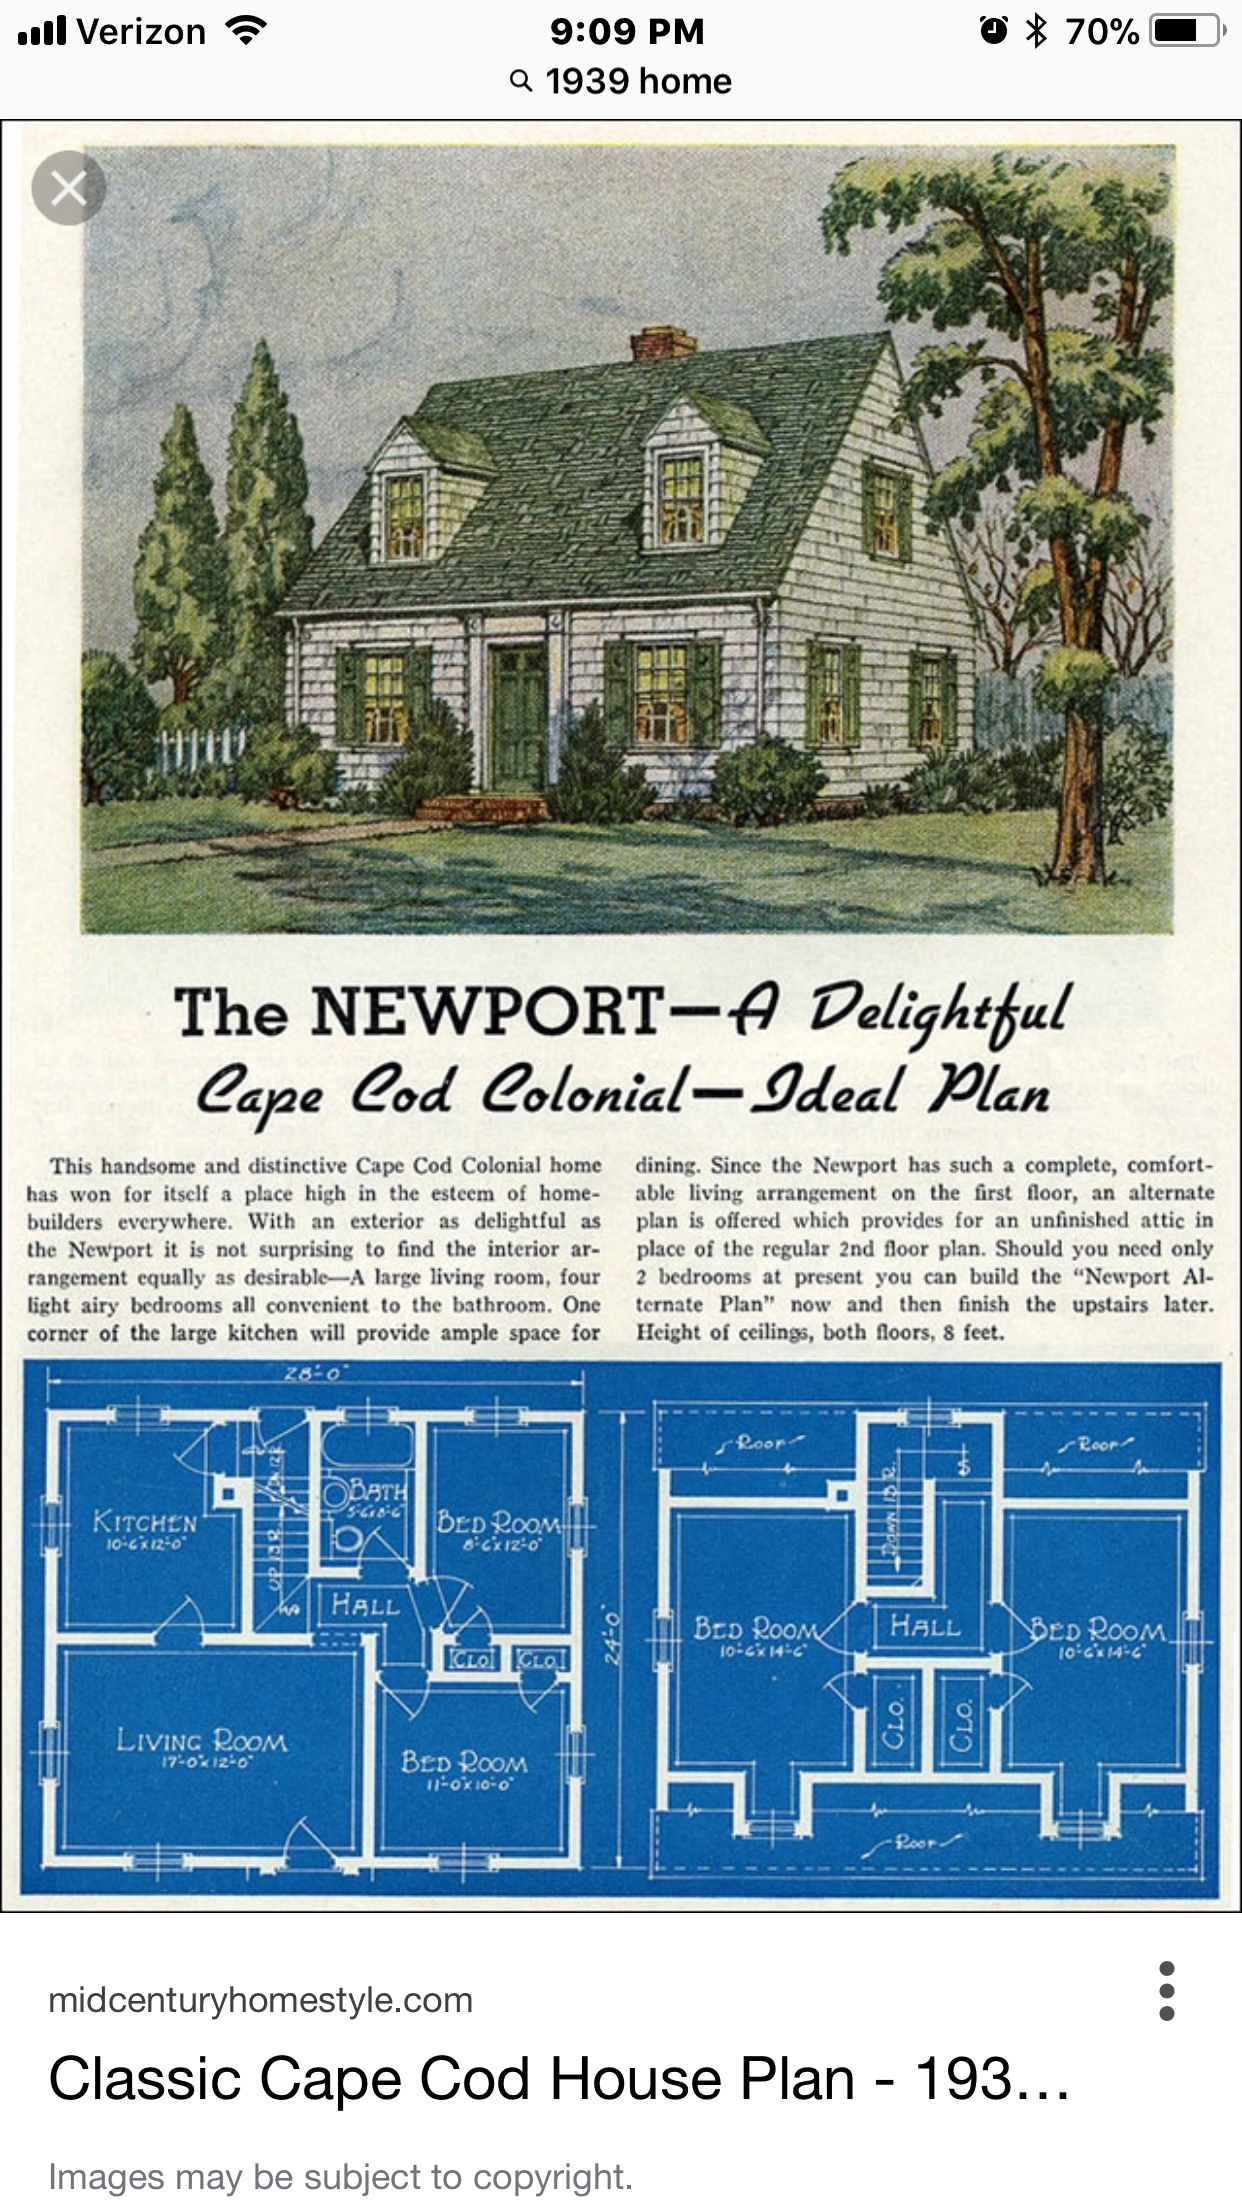 Pin By Kristi Robinett On Home Exterior Cape Cod House Plans Cape Cod Style House Cape Cod House